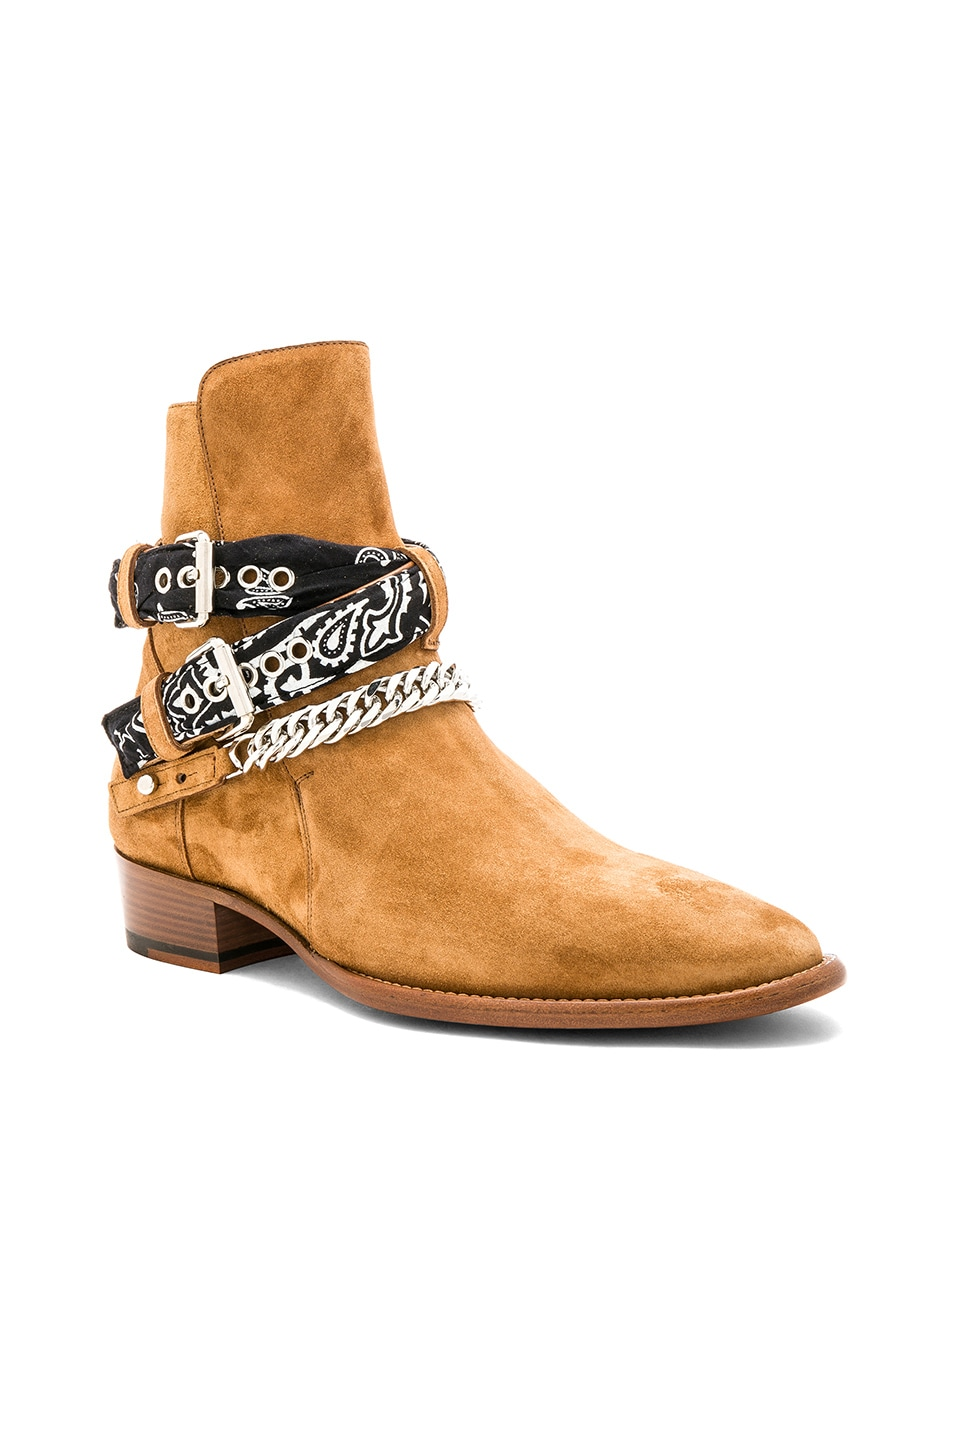 Brown Suede Bandana Buckle Boots Amiri Popular Cheap Price Good Selling Pick A Best For Sale Discount Enjoy MbCuIG2rMB